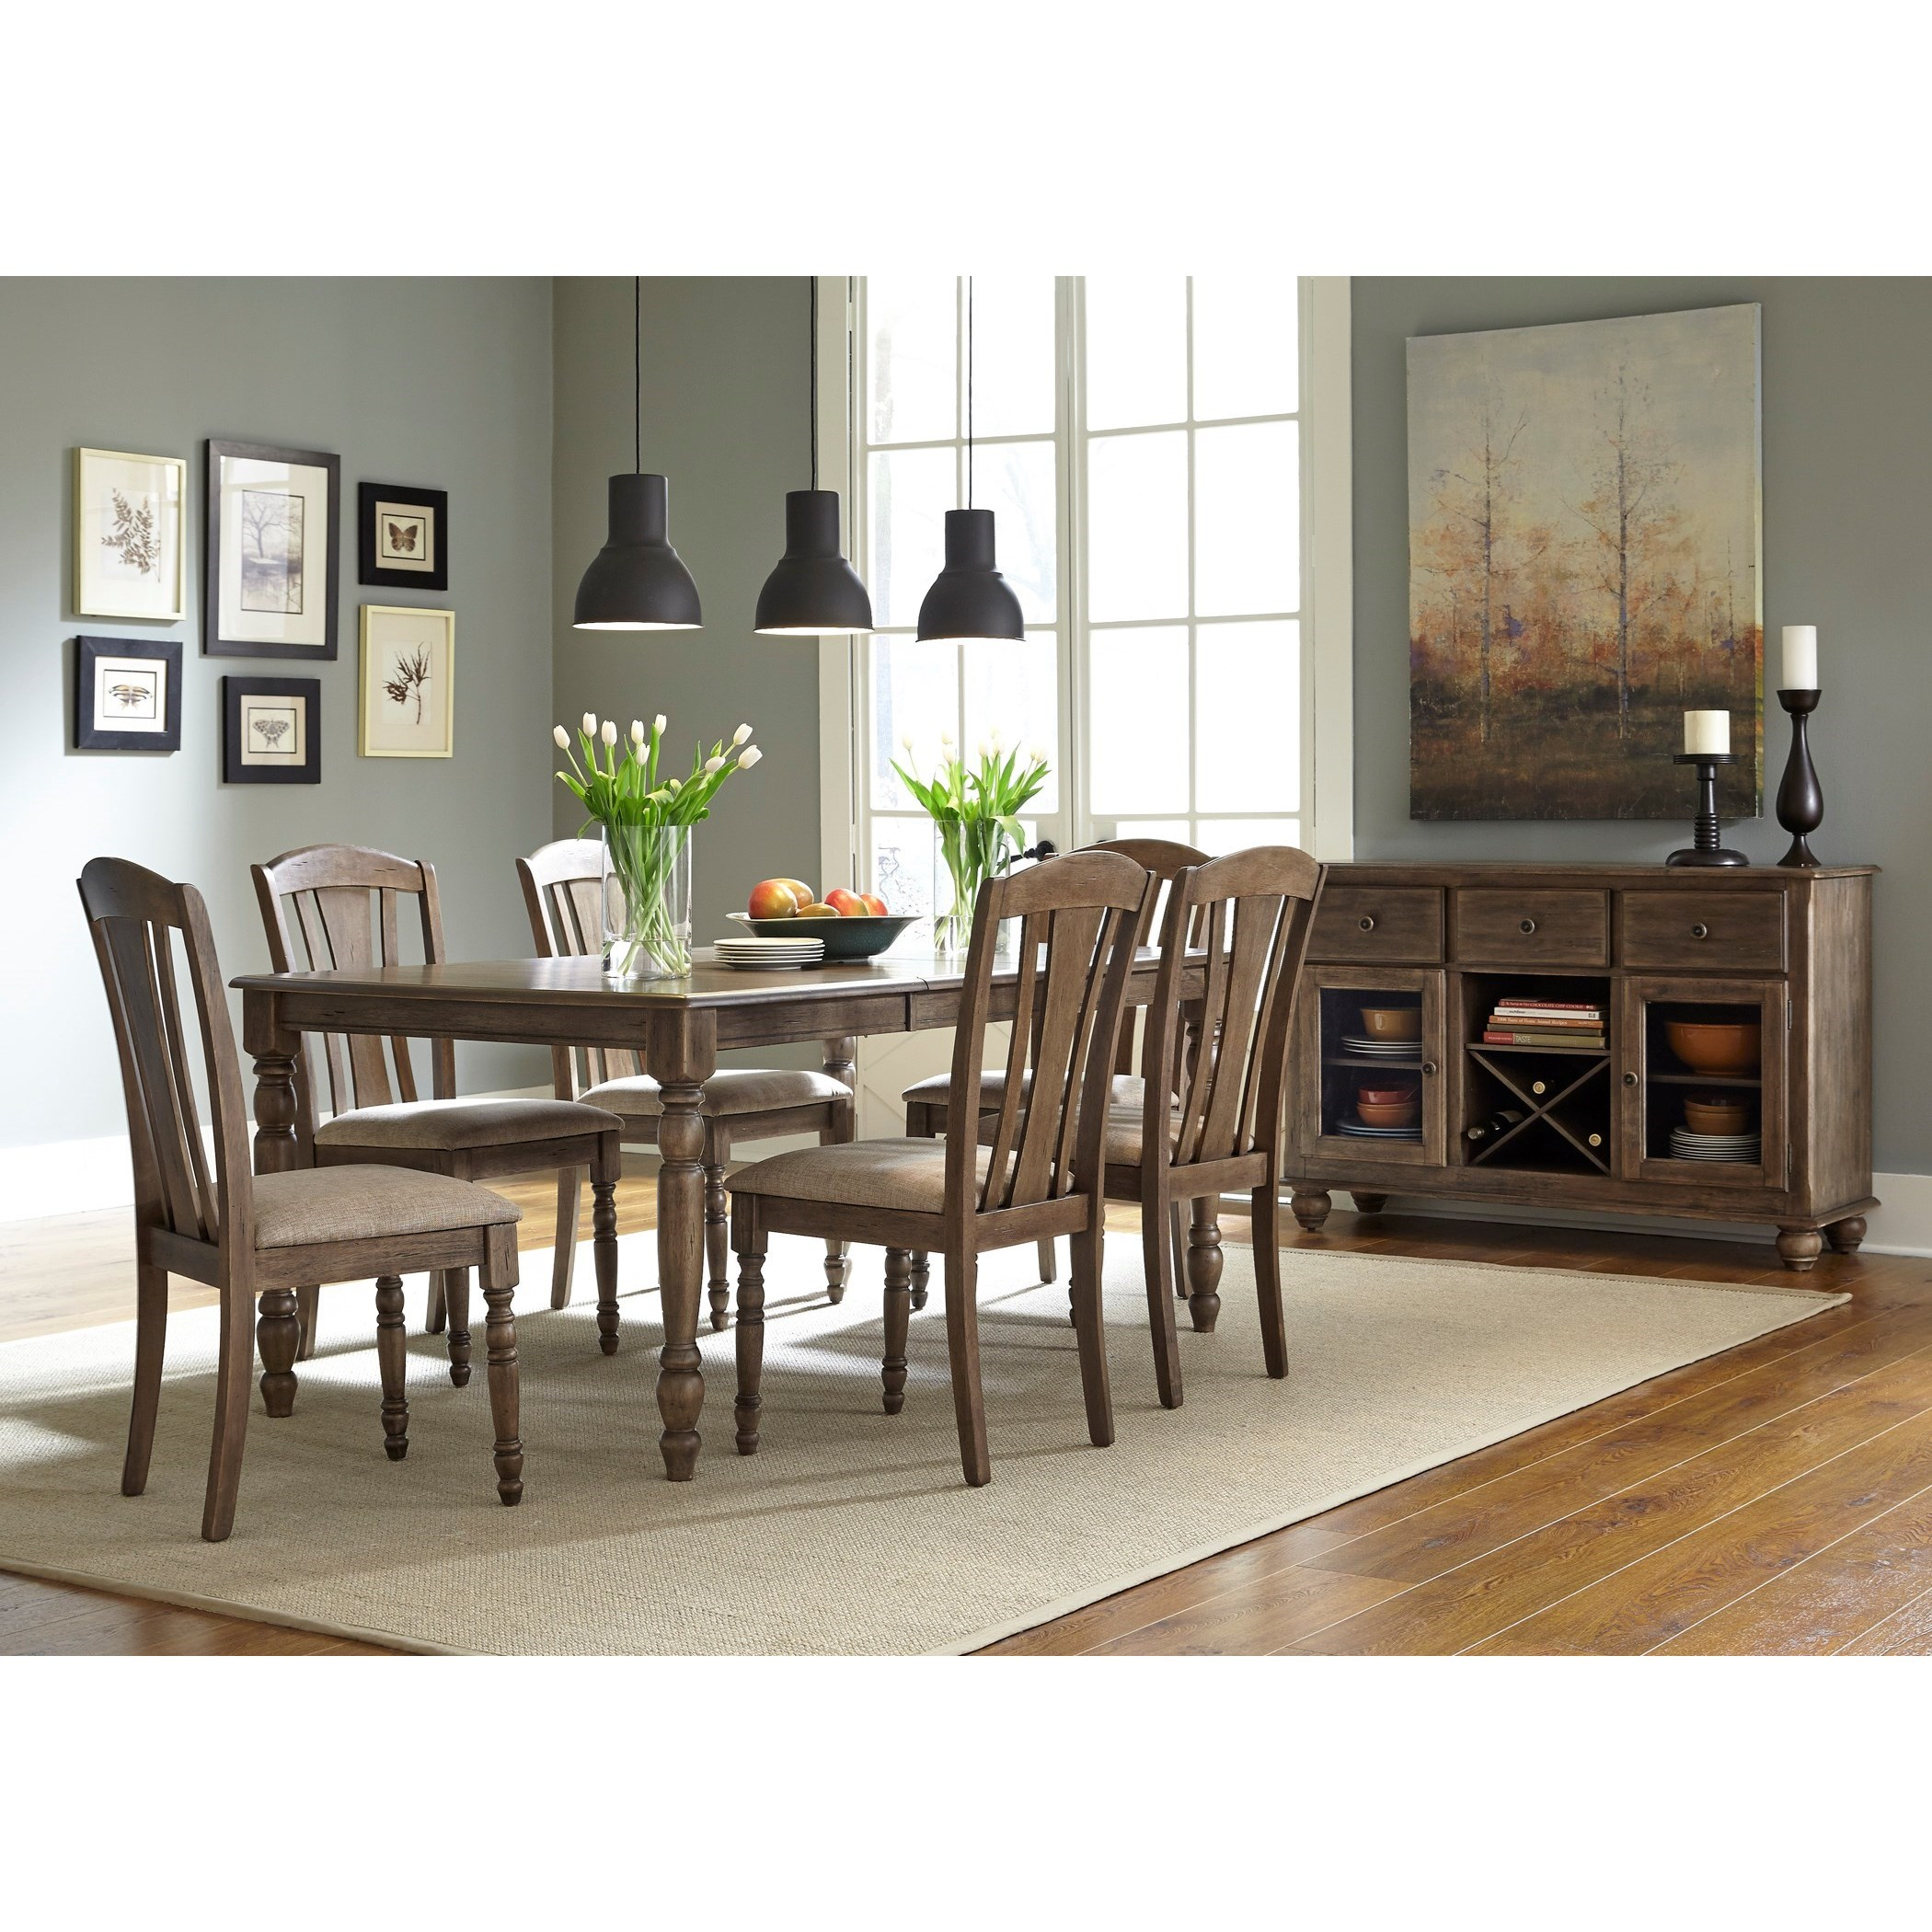 Liberty Dining Room Furniture: Liberty Furniture Candlewood Casual Dining Room Group